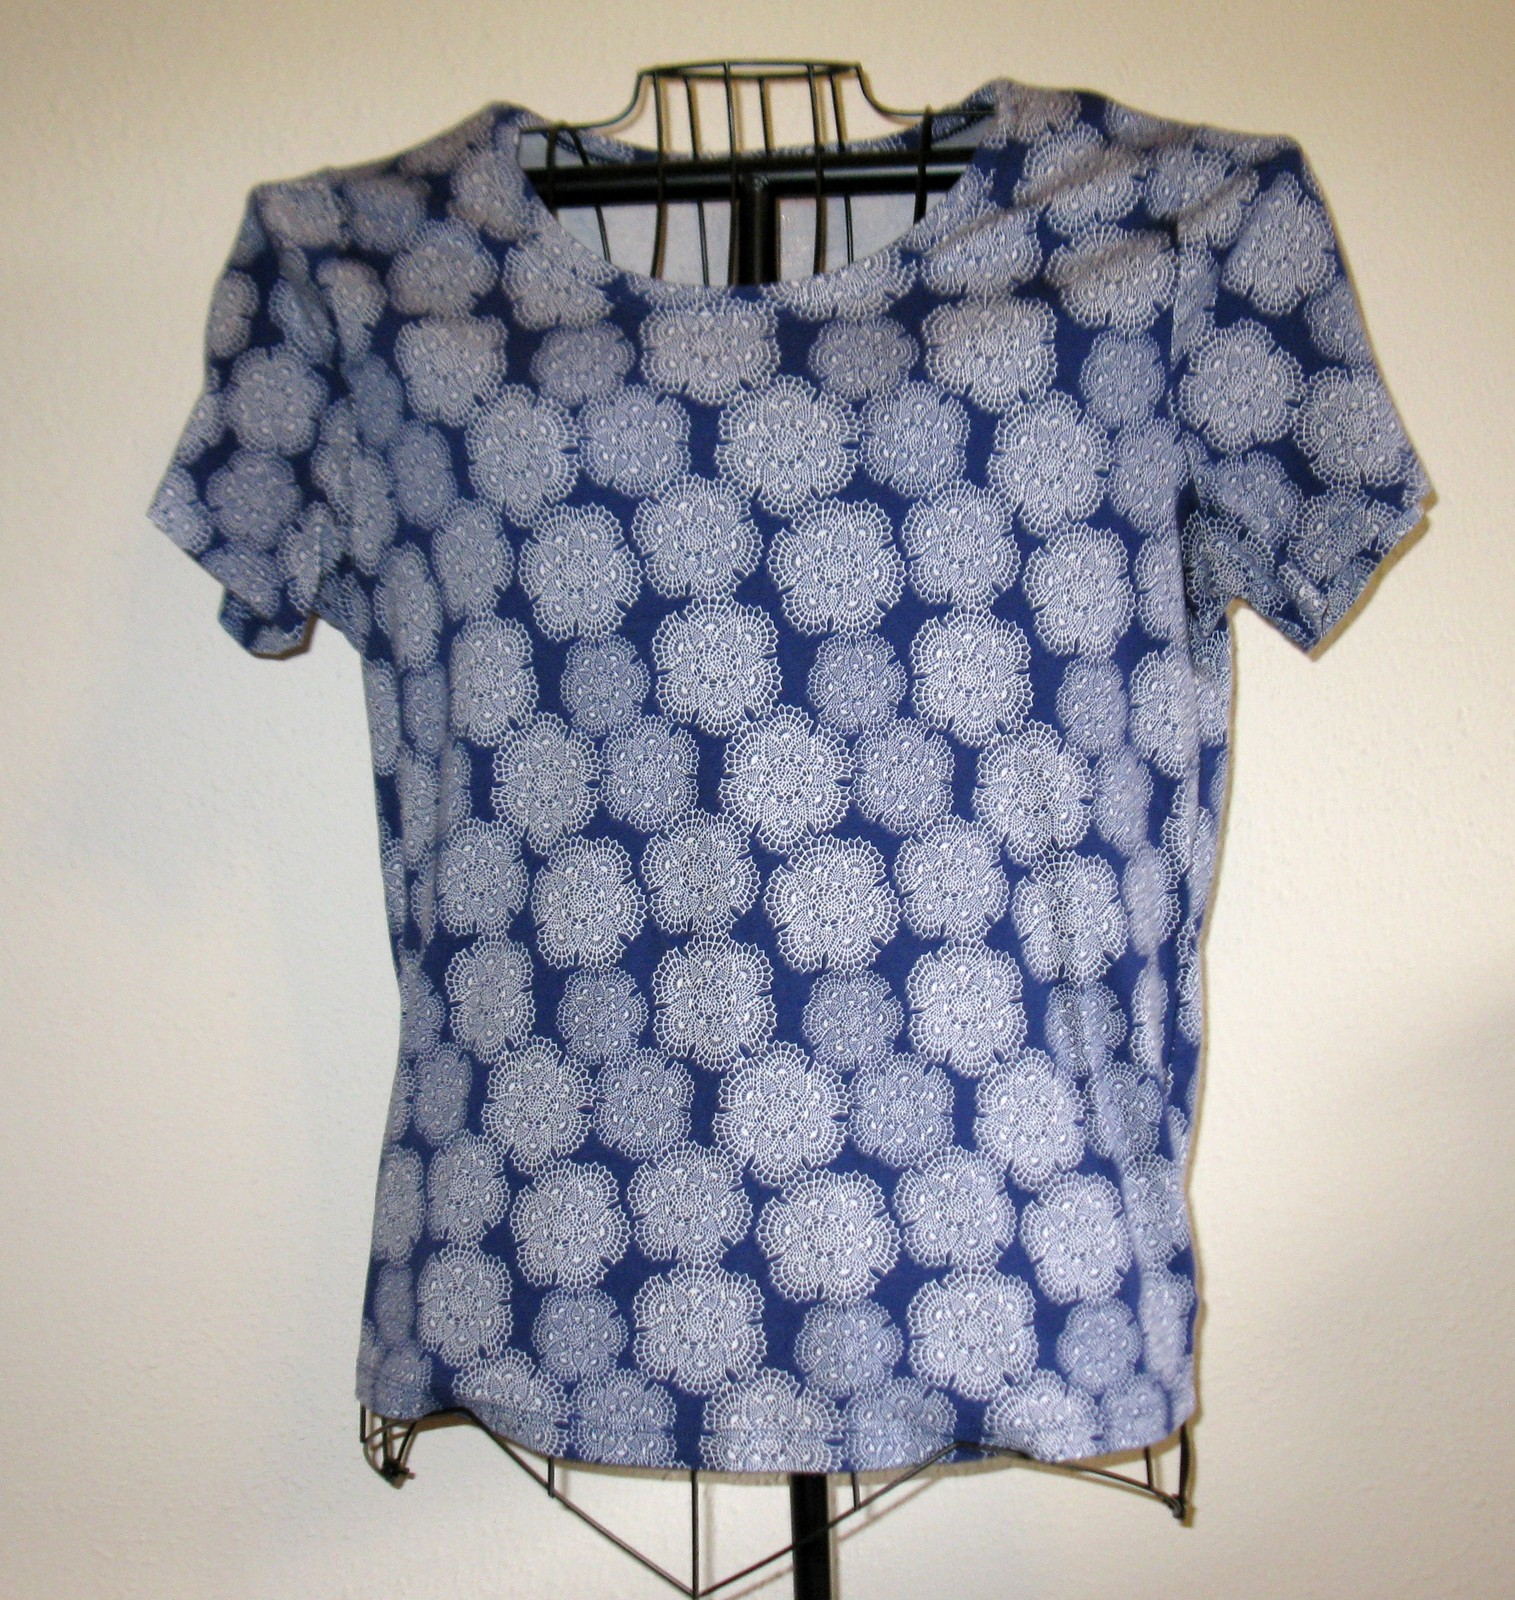 c34fe41f Navy Blue & White Design Top Shirt Blouse by and 17 similar items